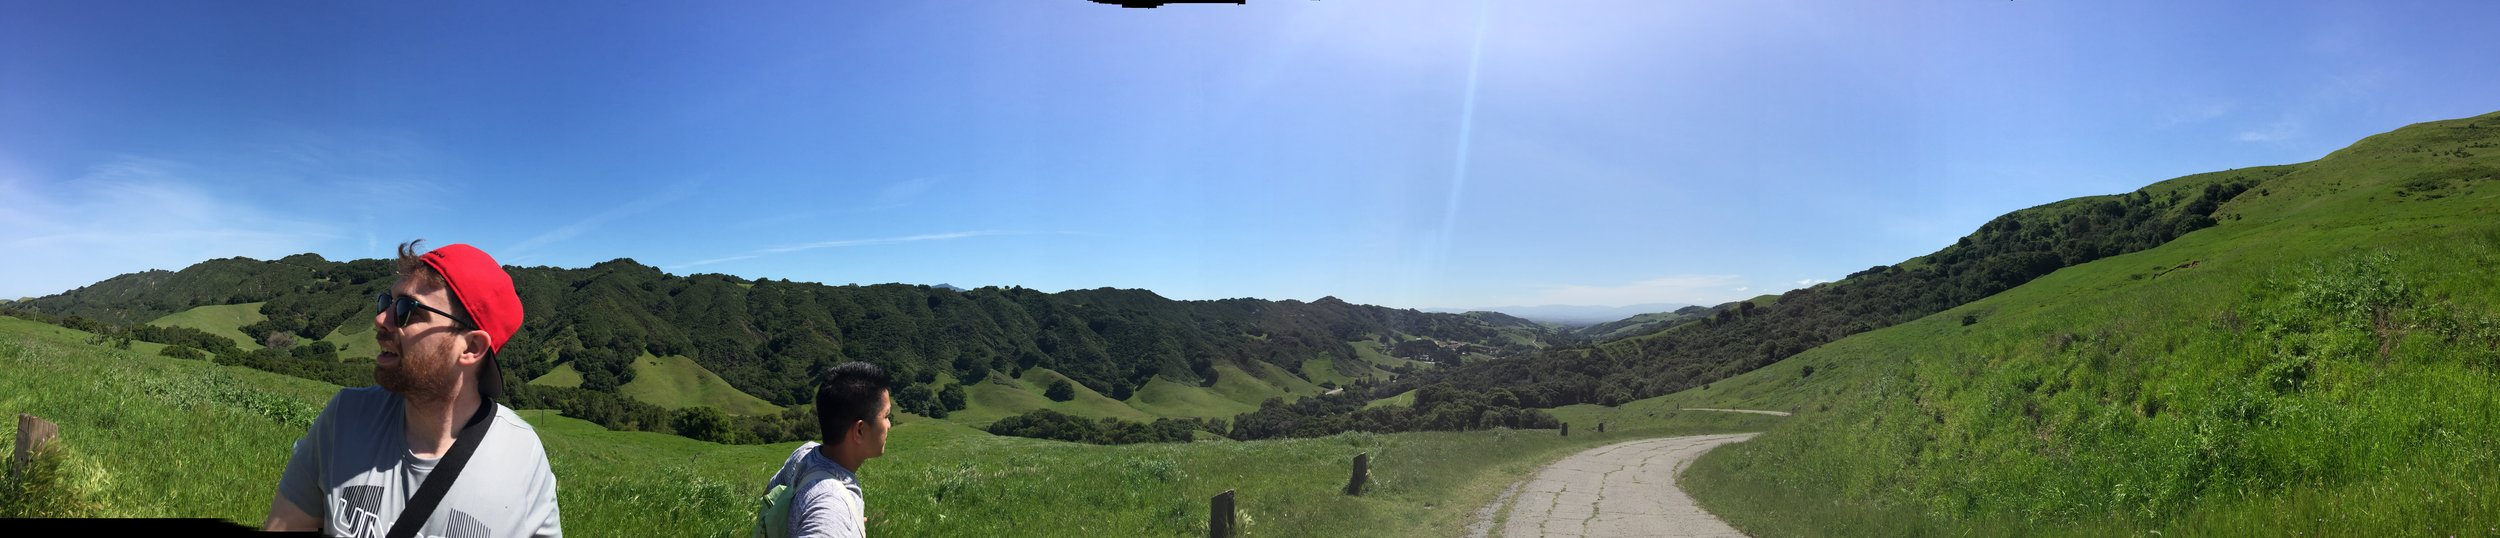 Panoramic view from the Rocky Ridge View Trail at Las Trampas Regional Wilderness.